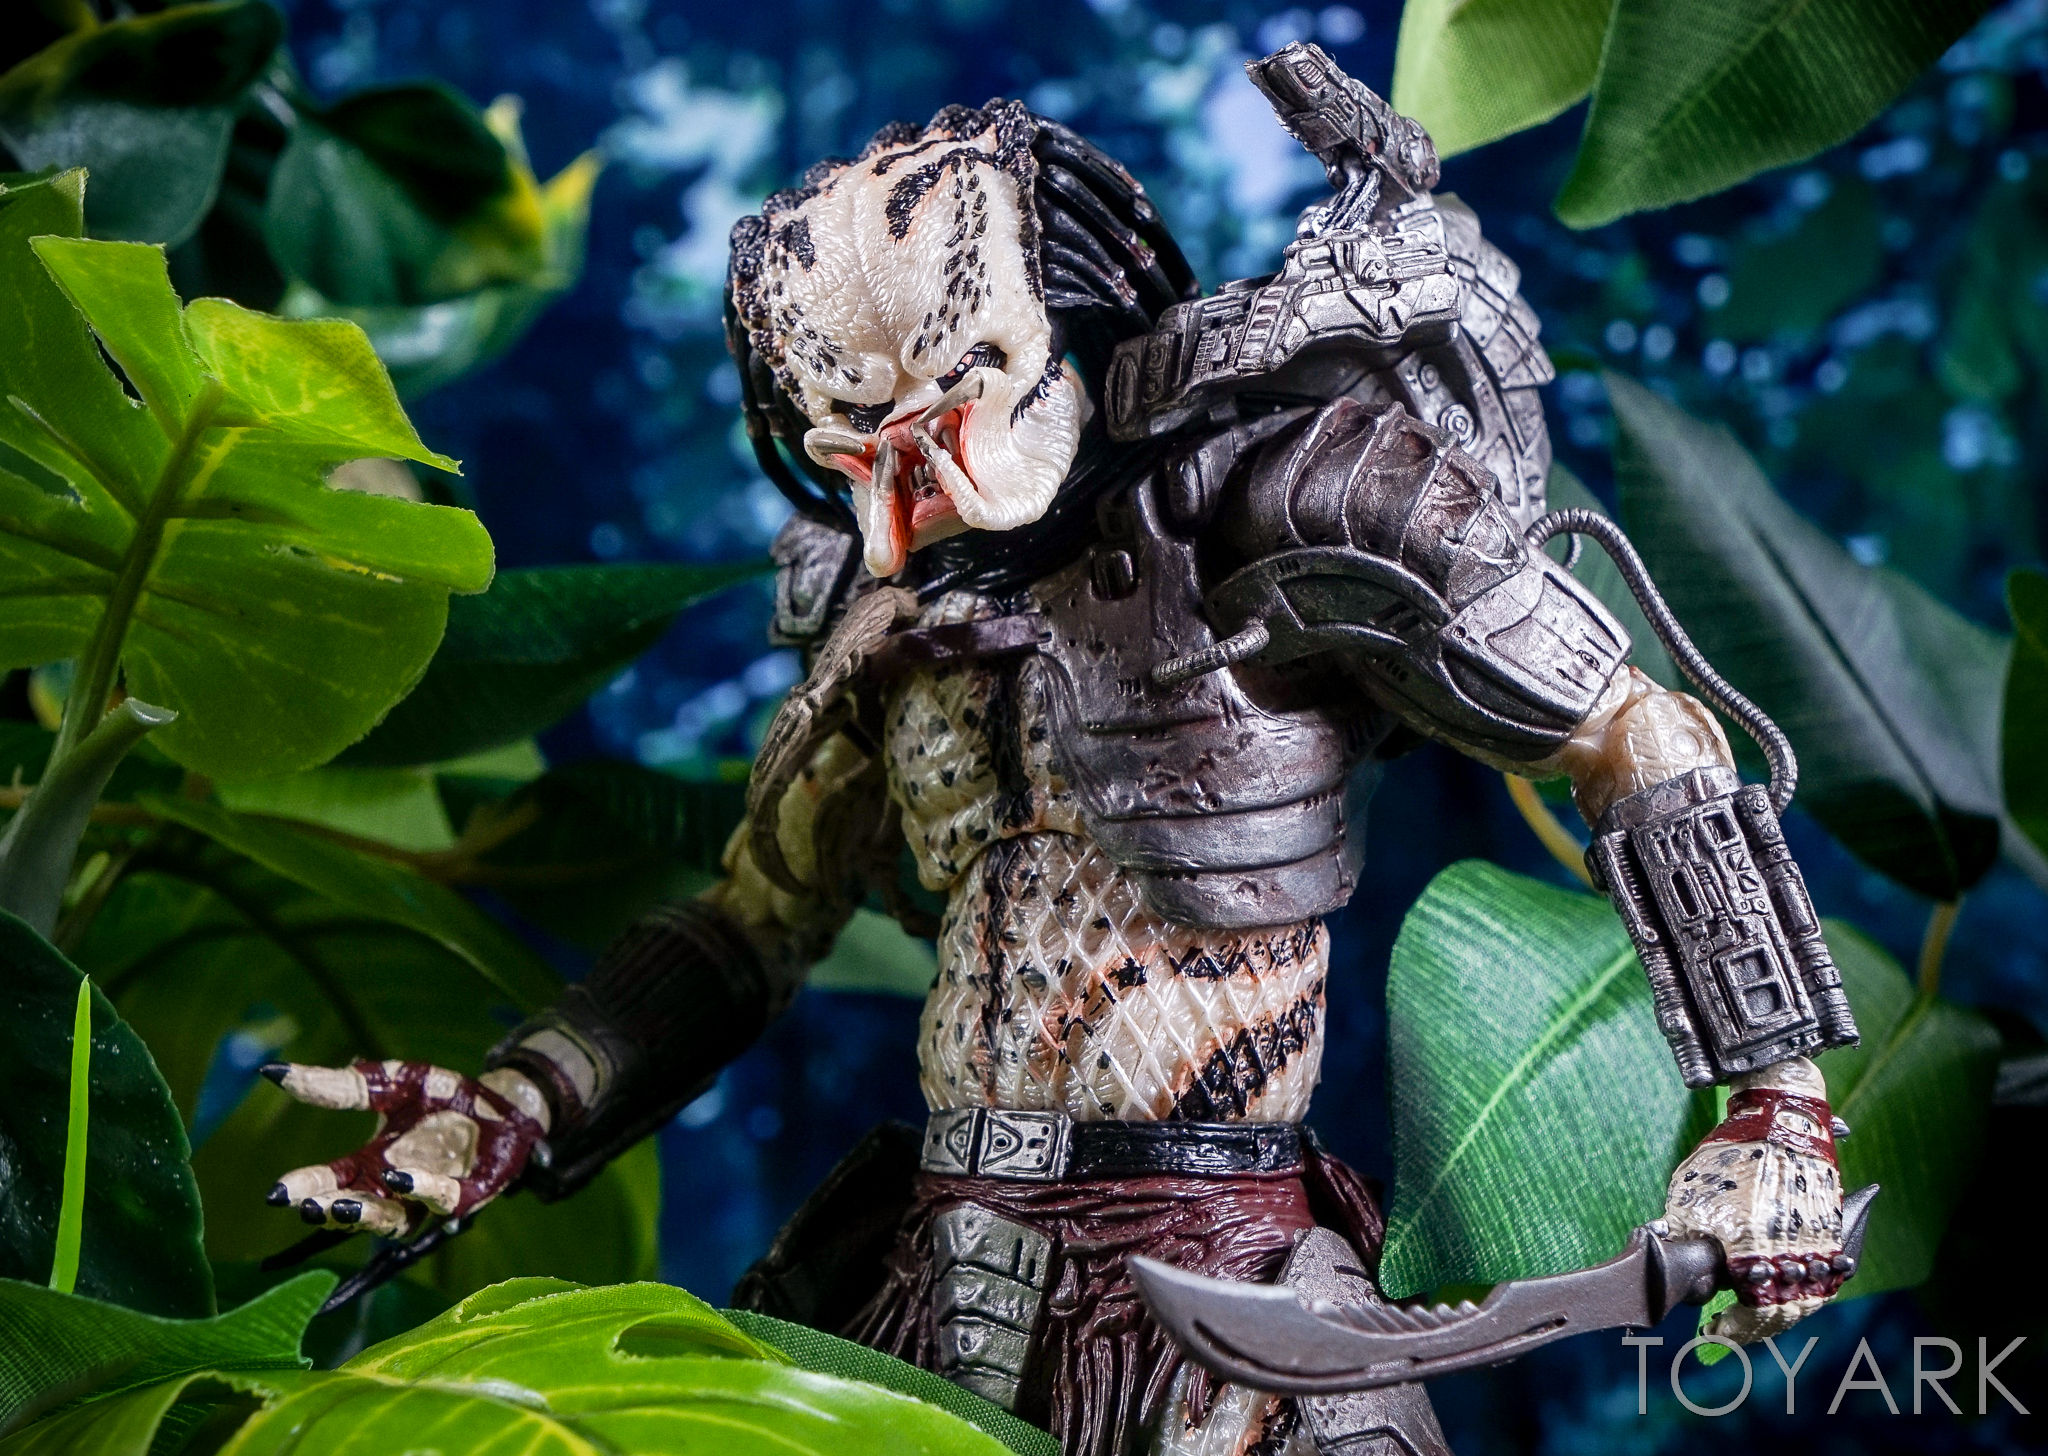 http://news.toyark.com/wp-content/uploads/sites/4/2016/10/Predator-Series-16-NECA-133.jpg